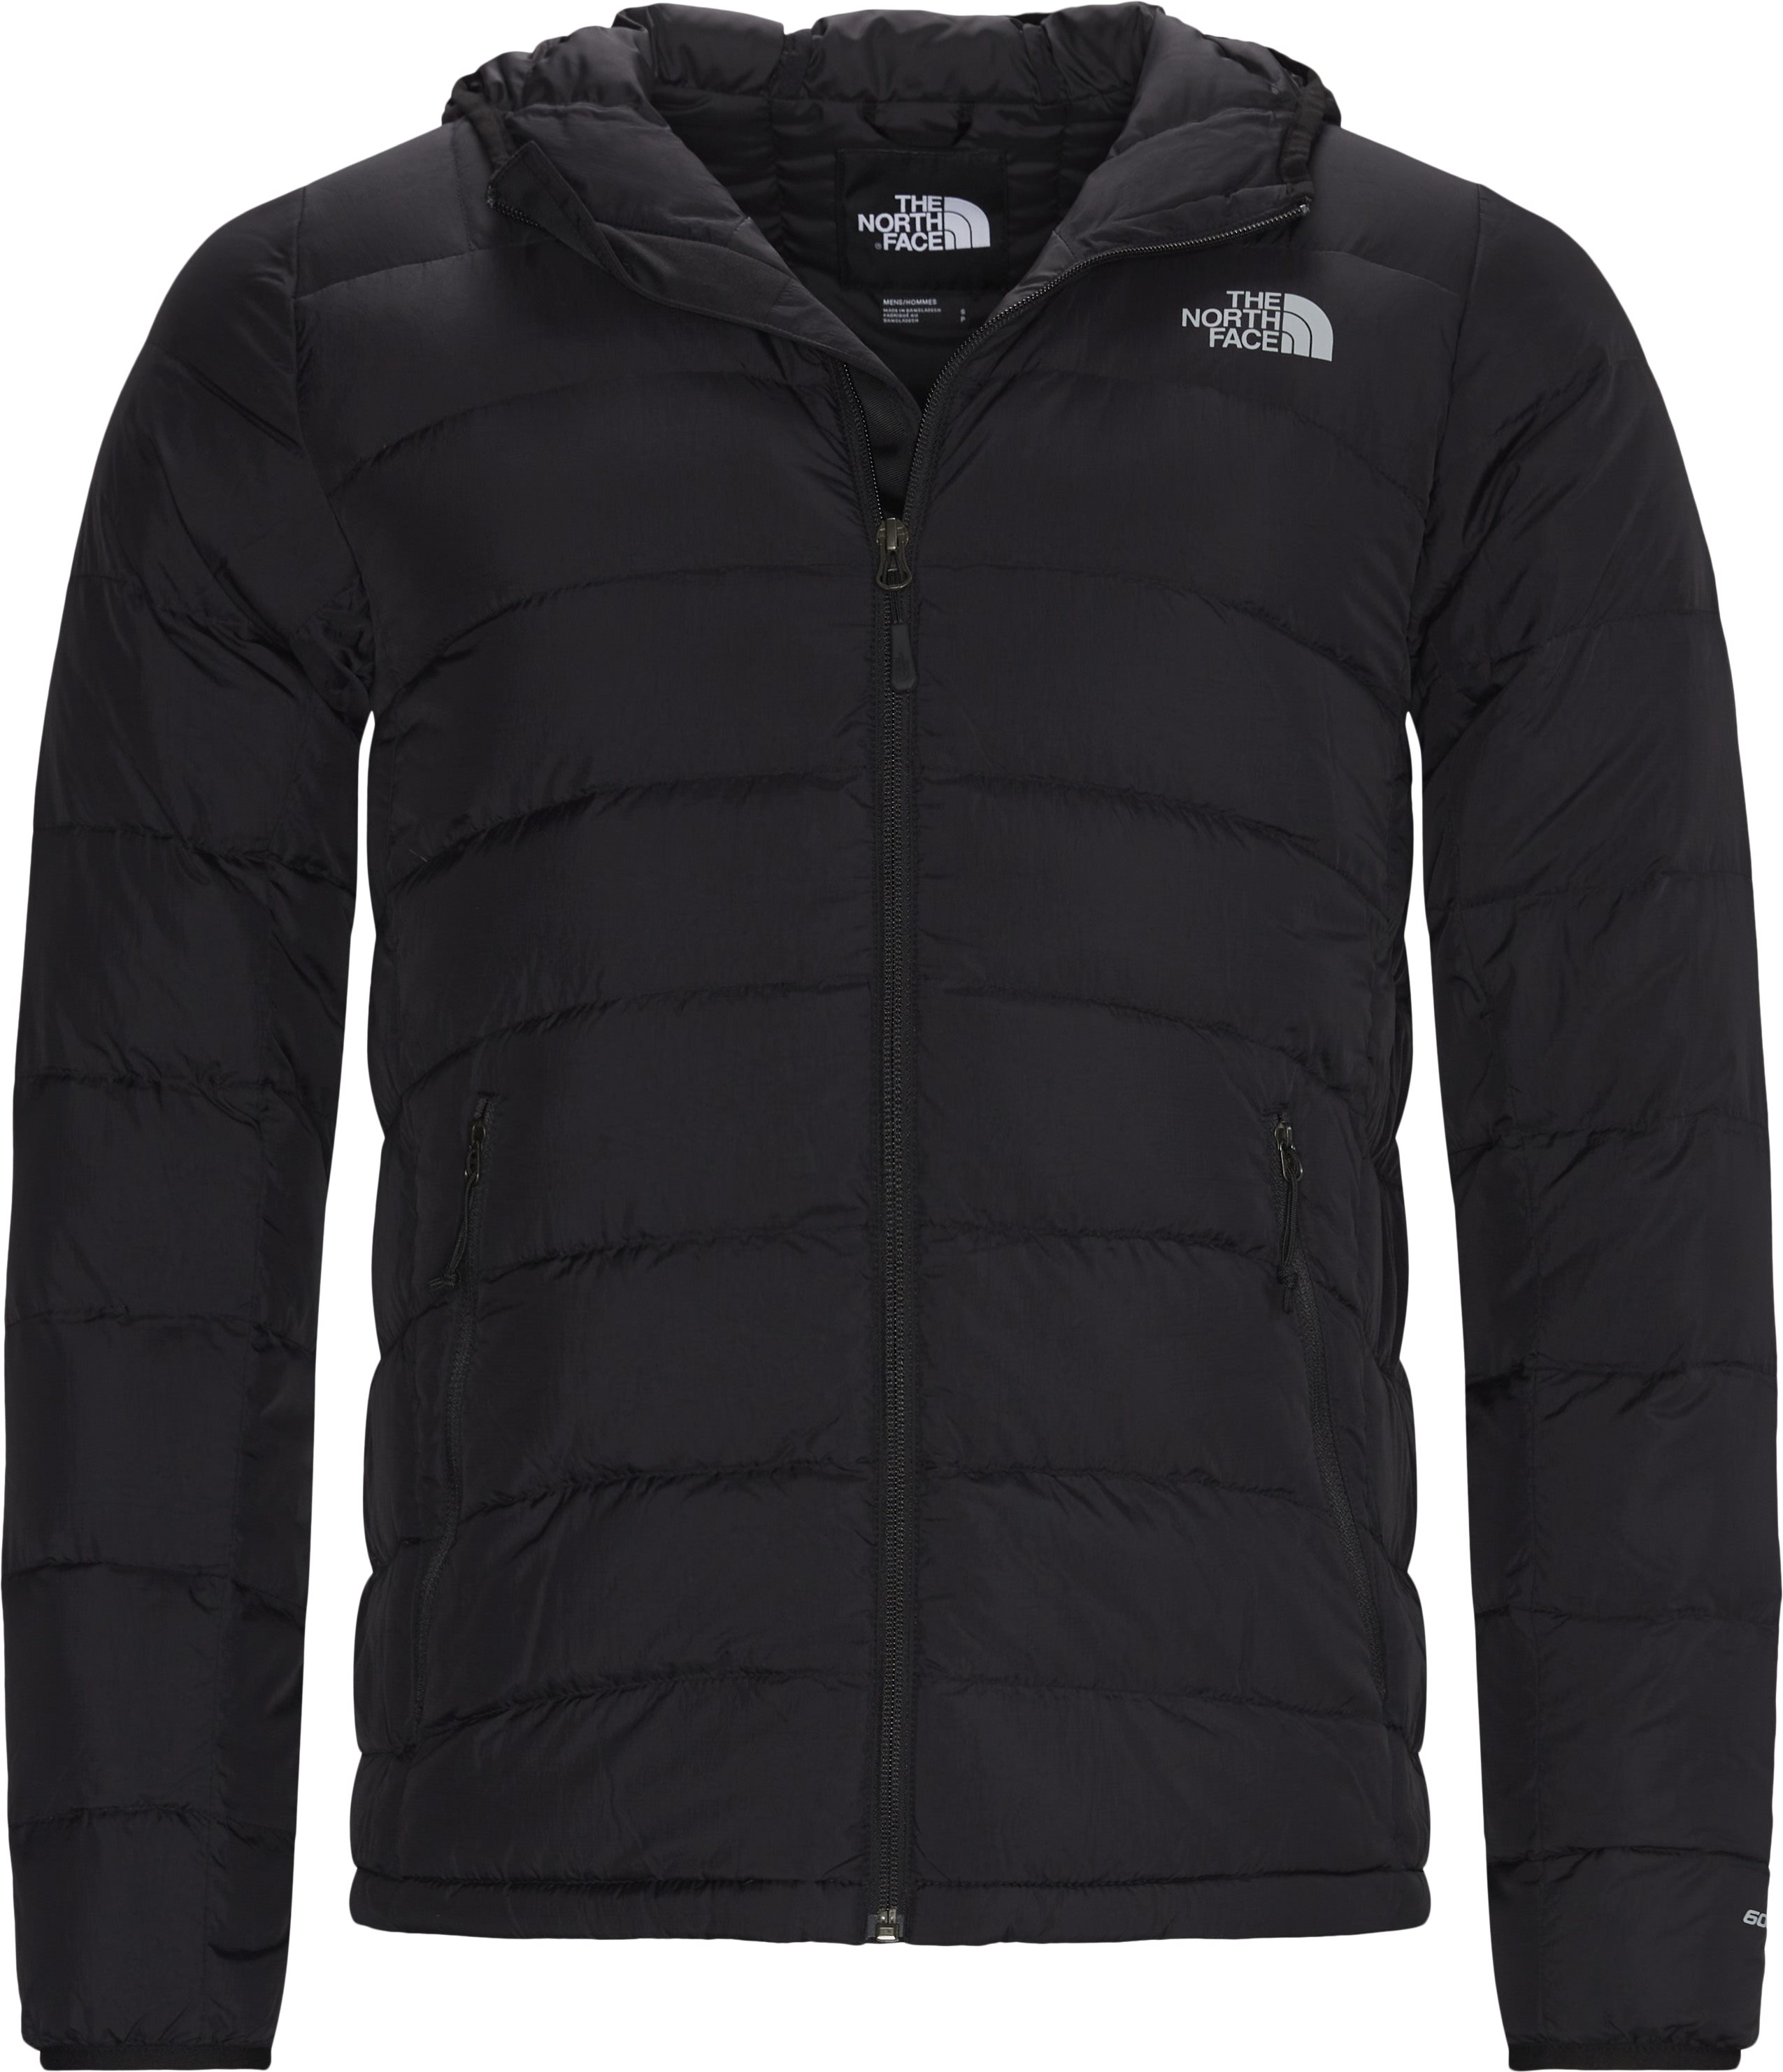 La Paz Hooded Down Jacket - Jackets - Regular - Black